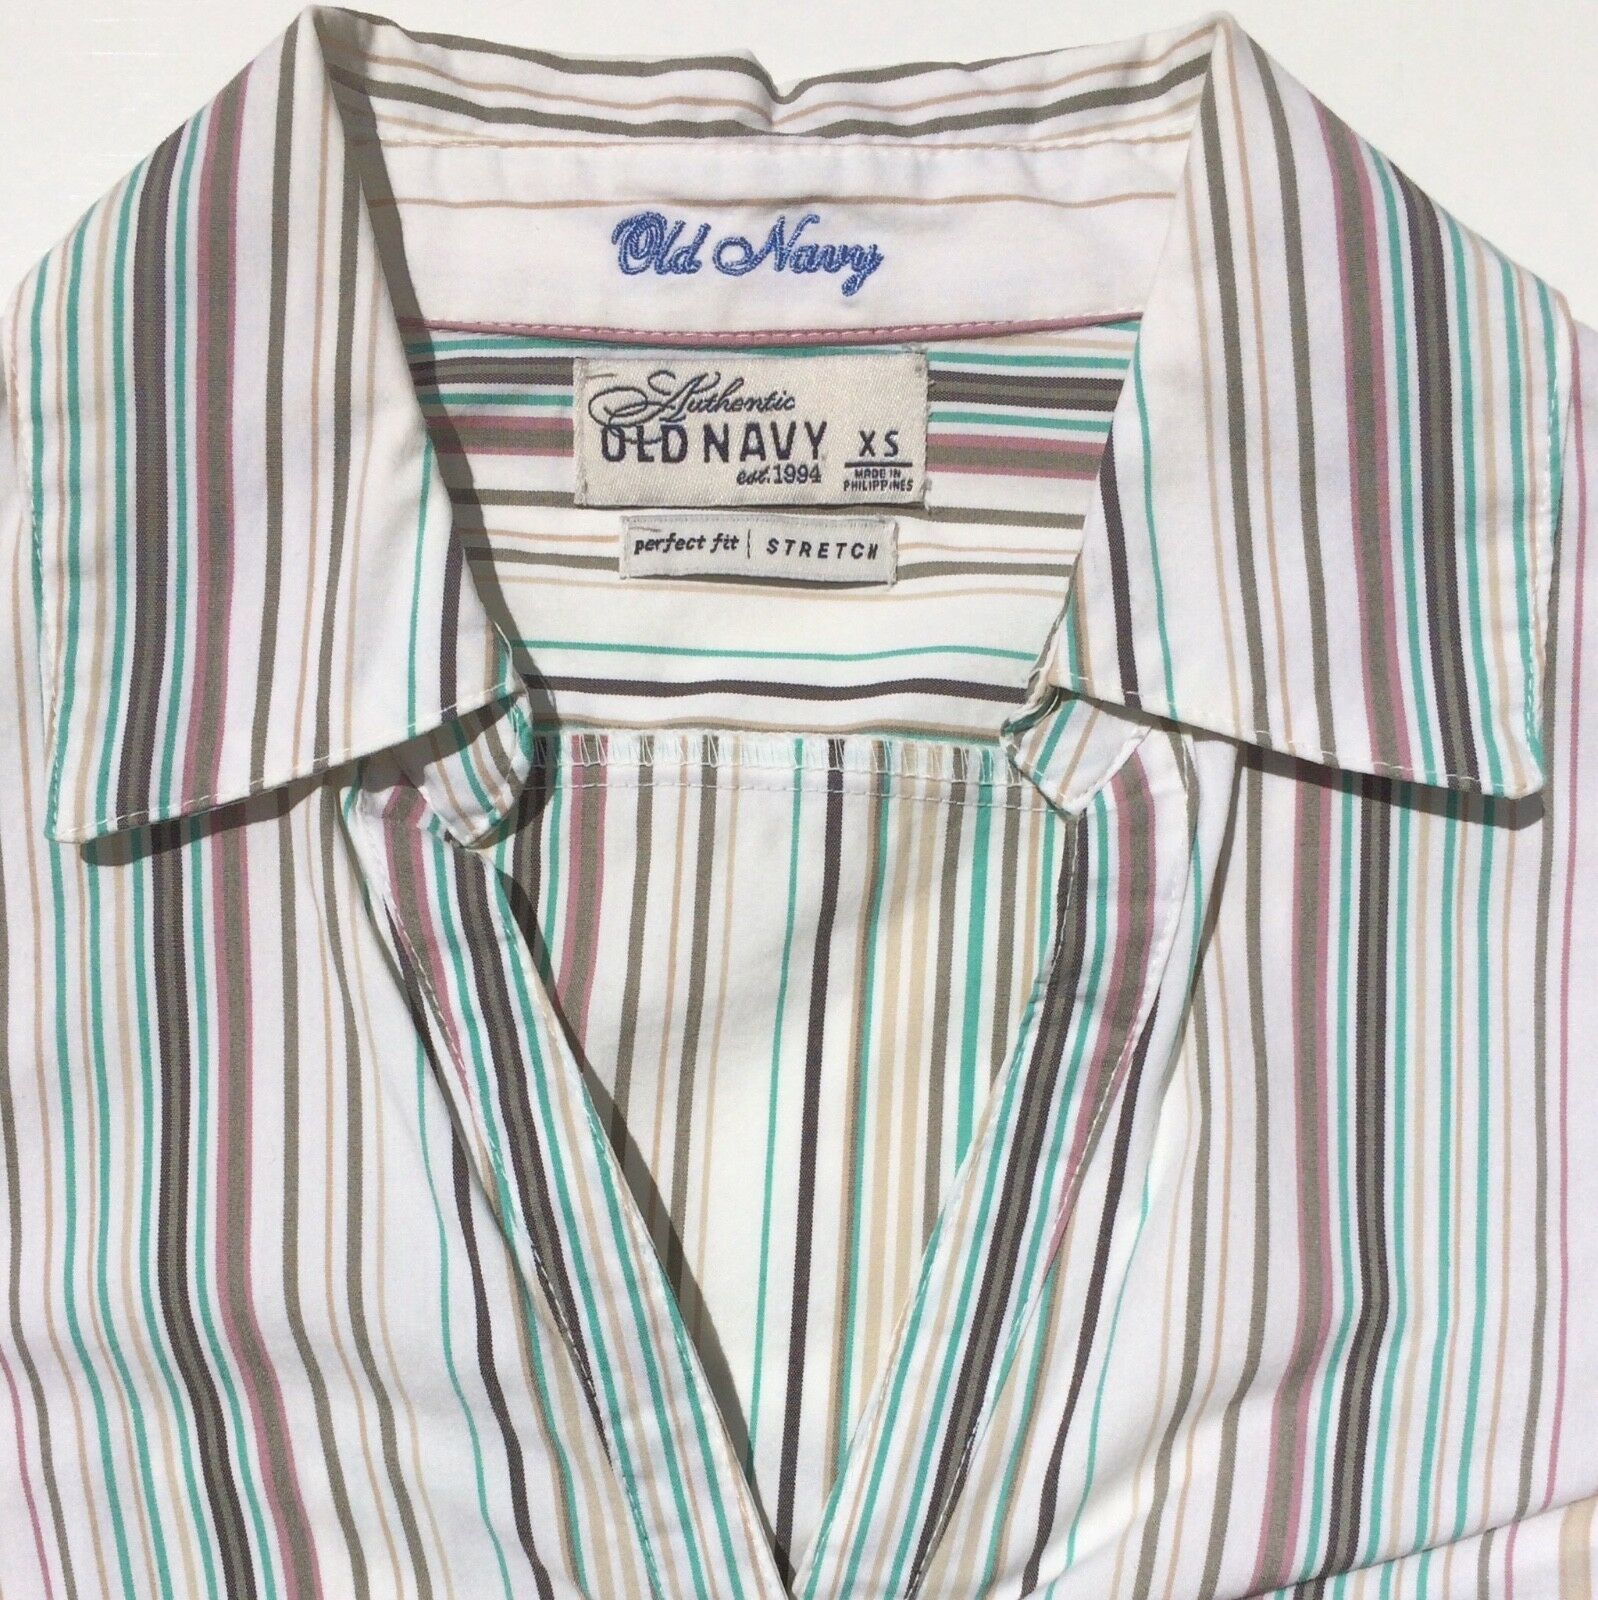 lot 2 dress shirts button 3/4 sleeve fitted stripe Old Navy size XS Express sz 2 image 11